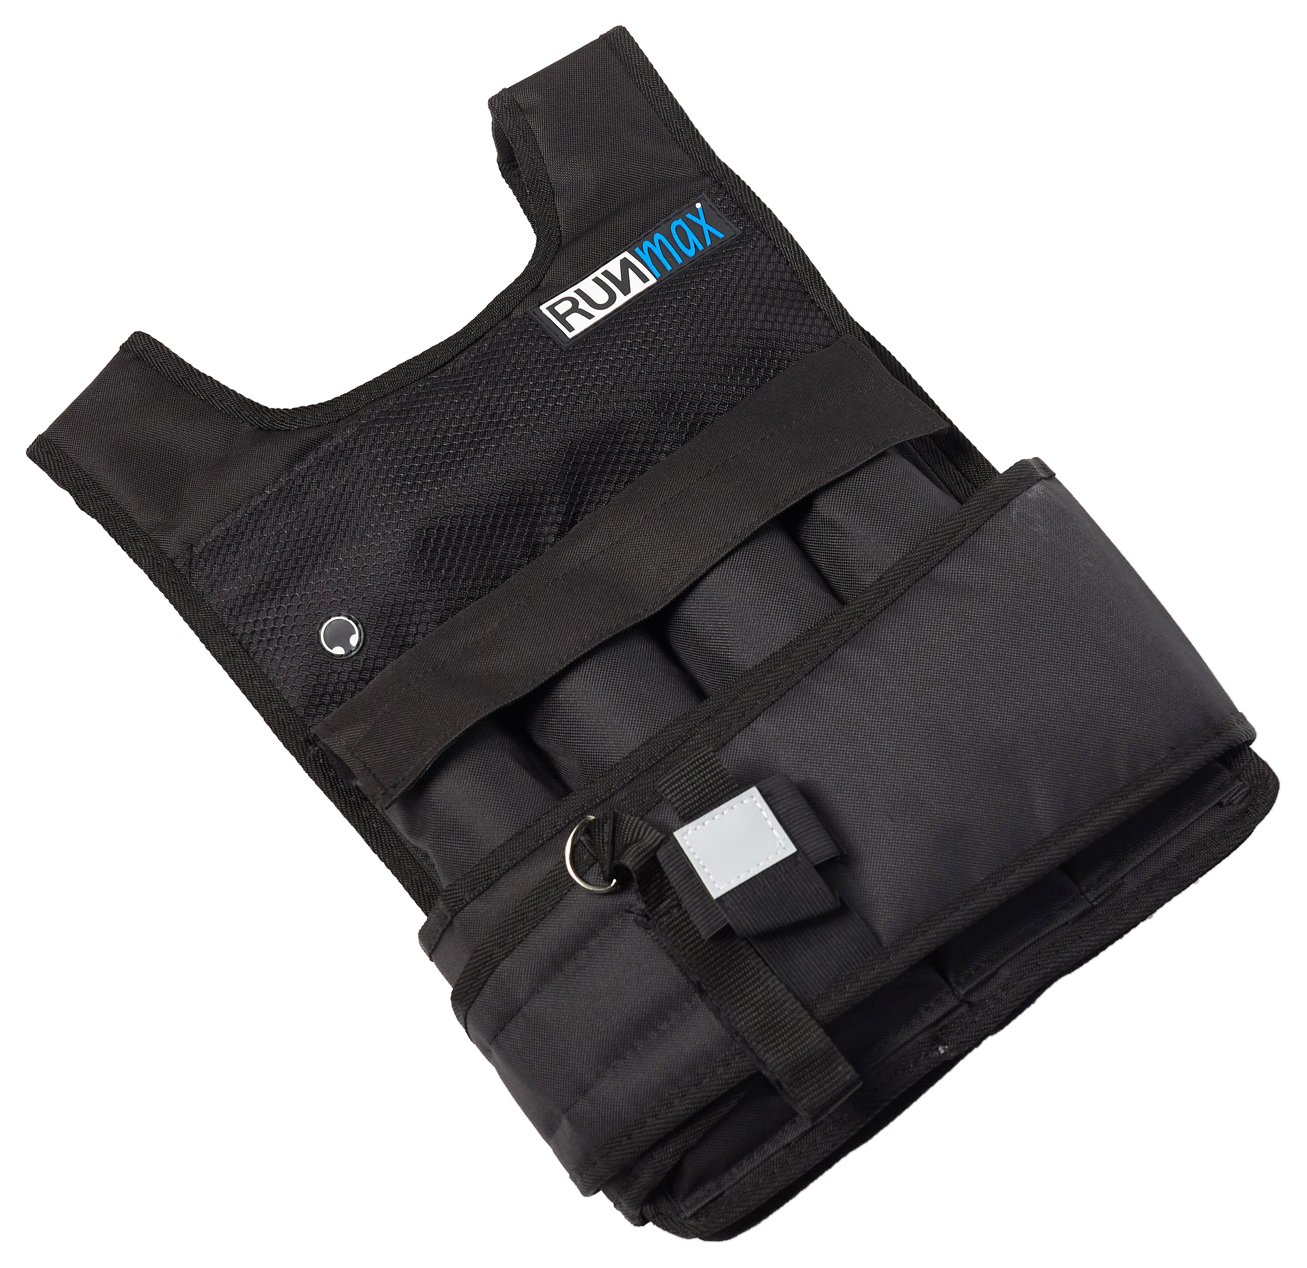 RUNFast Pro Weighted Vest 12lbs.-60 lbs. (without Shoulder Pads, 40 lb.) RM_40